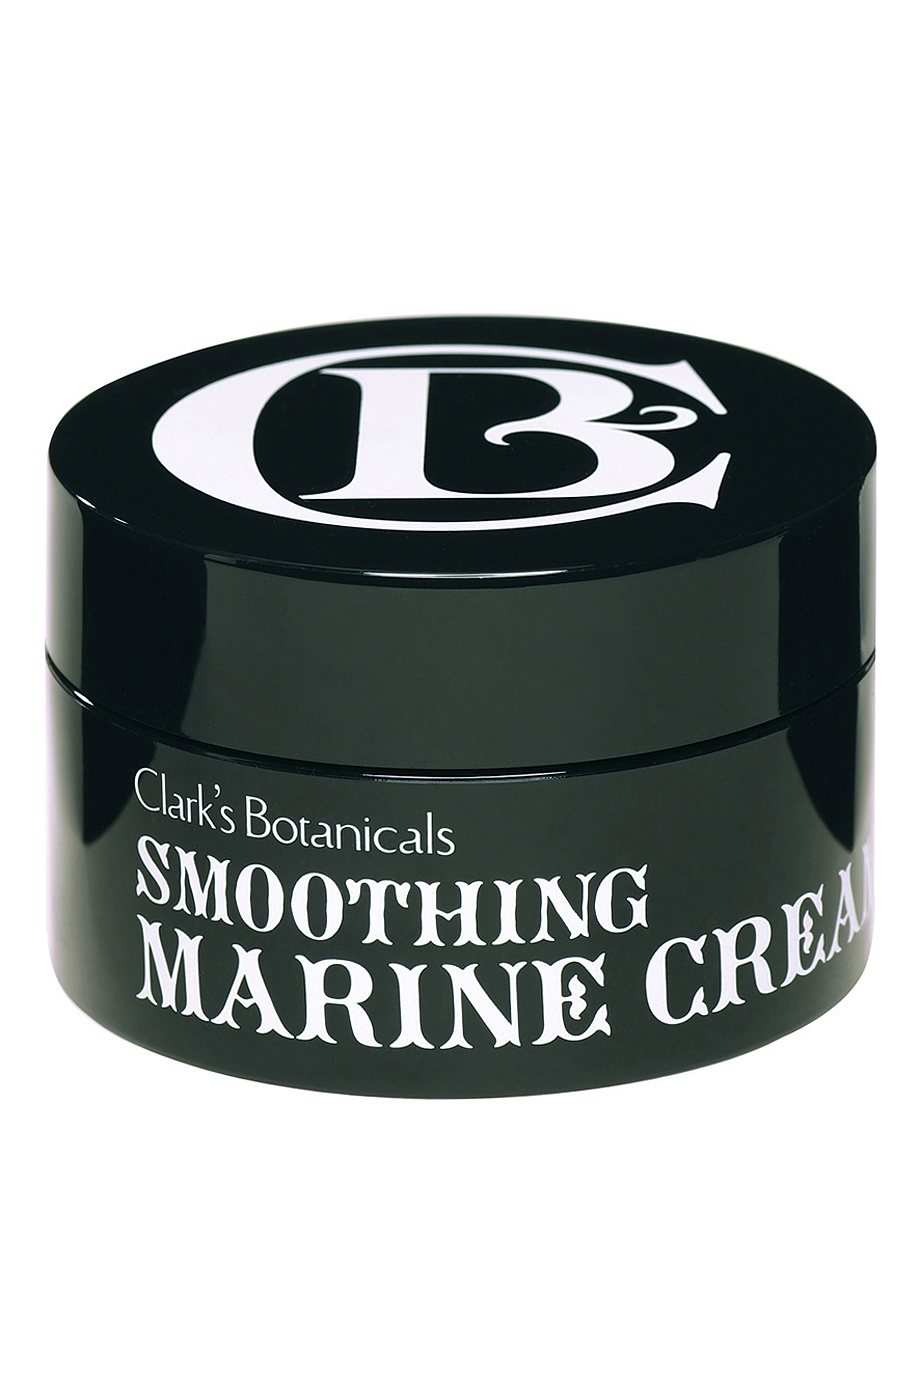 Крем для лица Smoothing Marine 50ml Clark's Botanicals (фото)